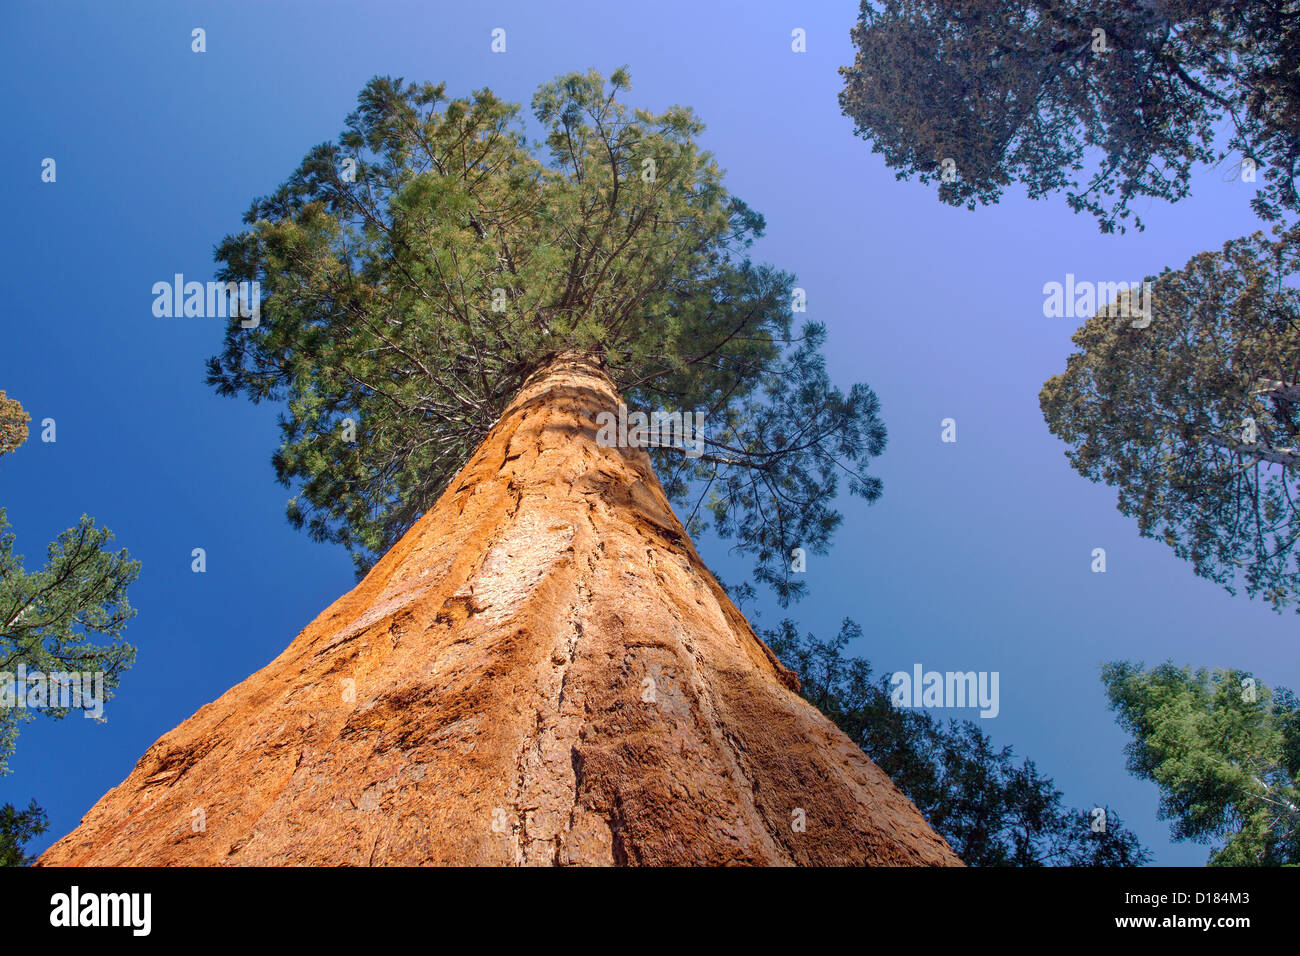 Looking up the trunk of a Giant Sequoia Tree in Yosemite National Park California. - Stock Image